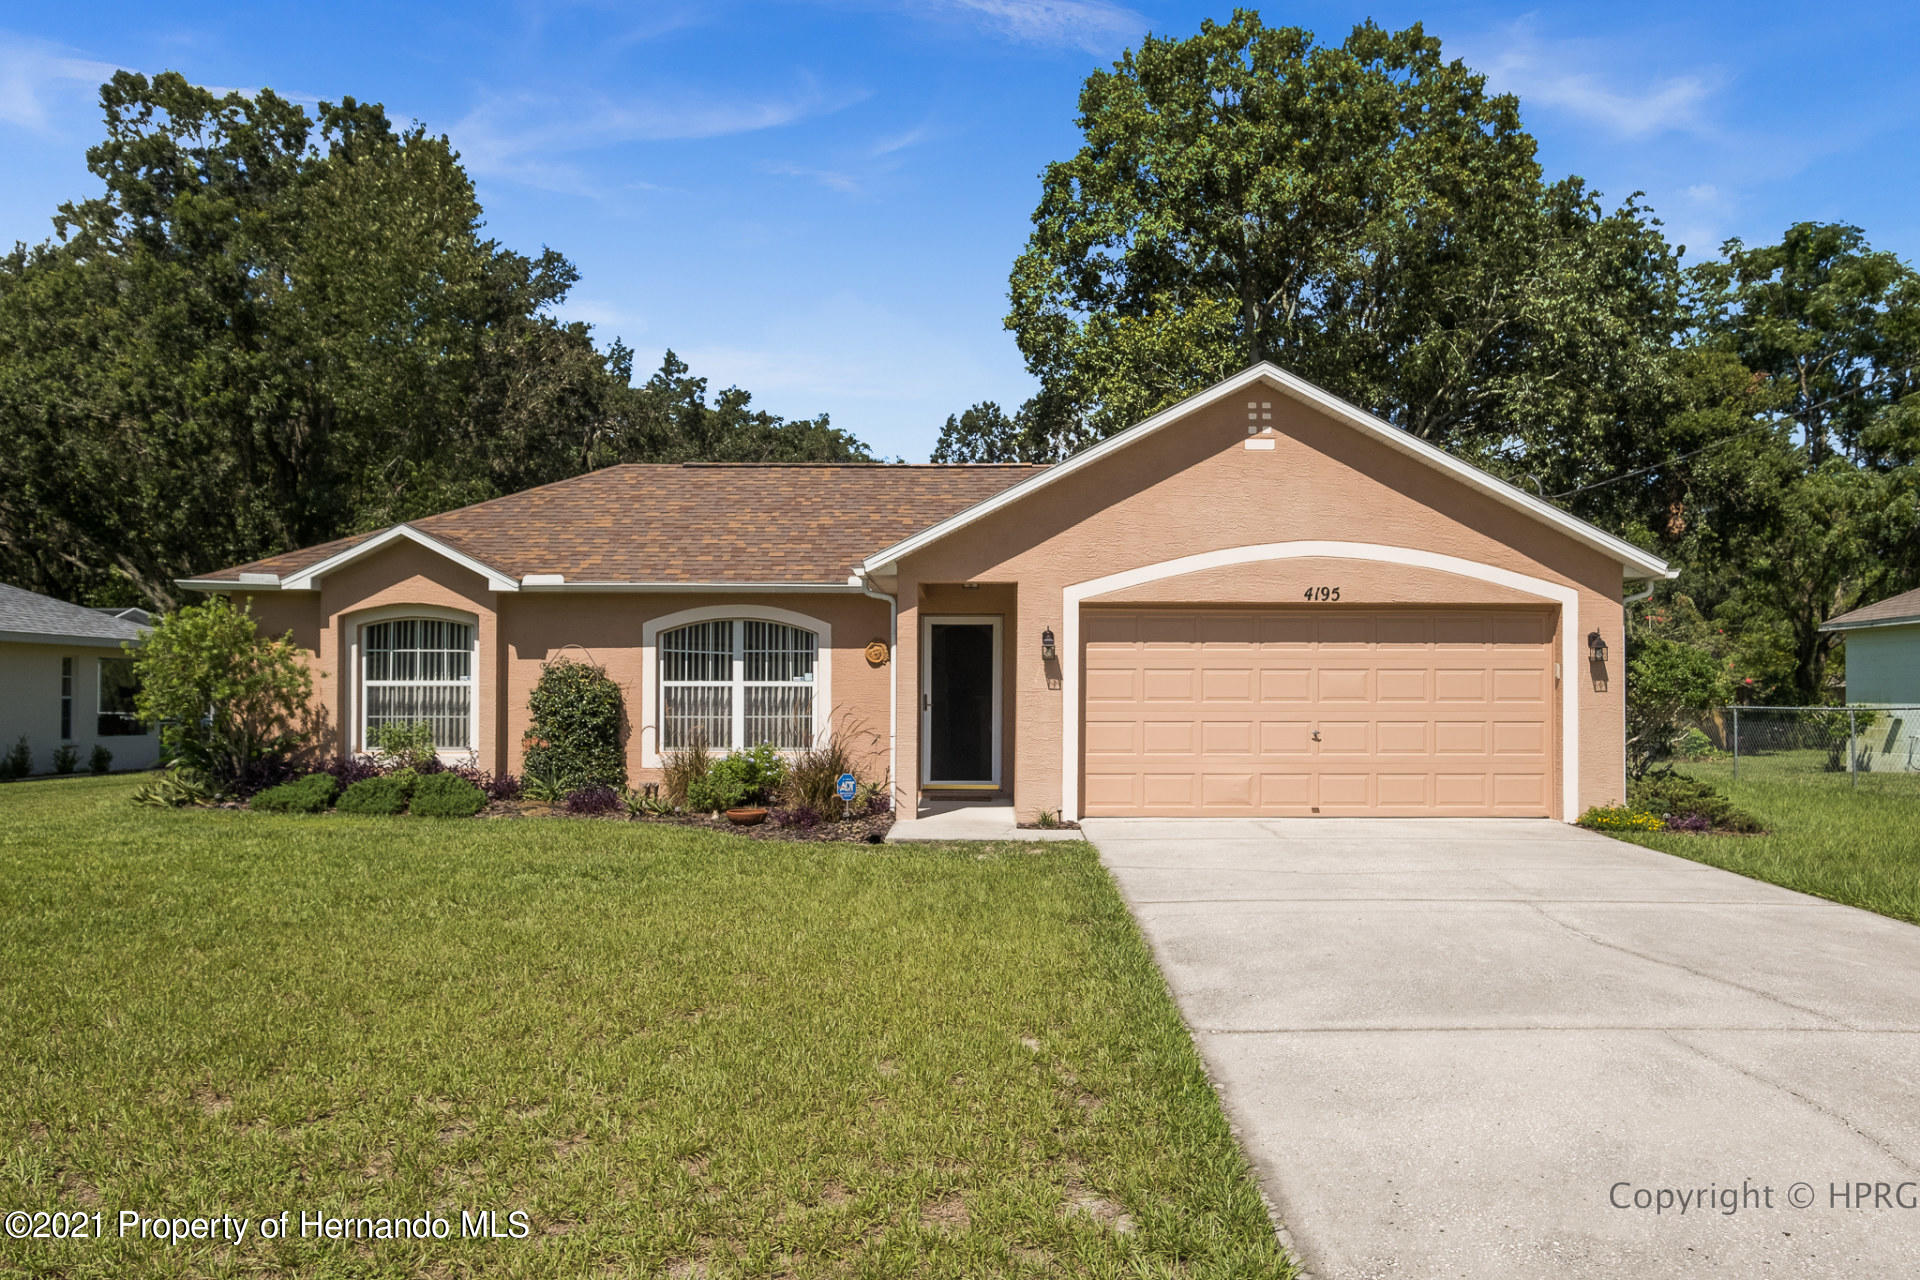 Details for 4195 Courts Court, Spring Hill, FL 34609